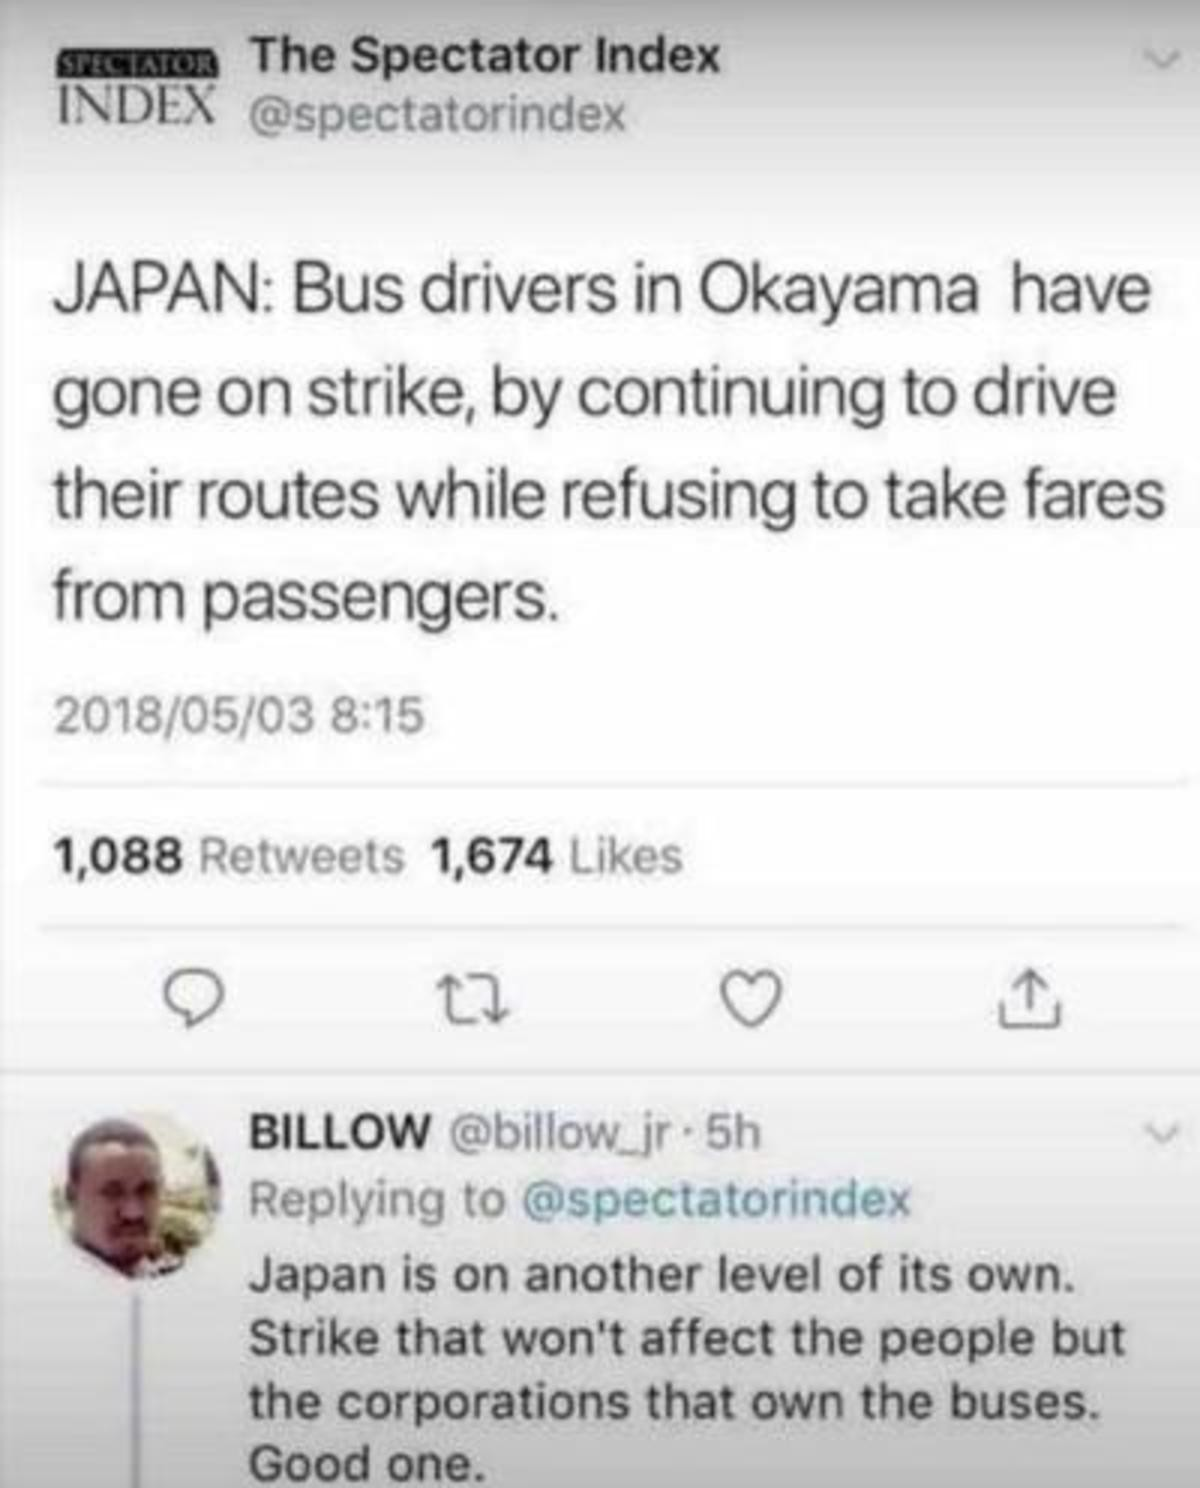 Japan. .. That's great thinking, when bus/subway drivers are going on the strike they basicaly over everyone who just wants to work and has been paying the fares correctl